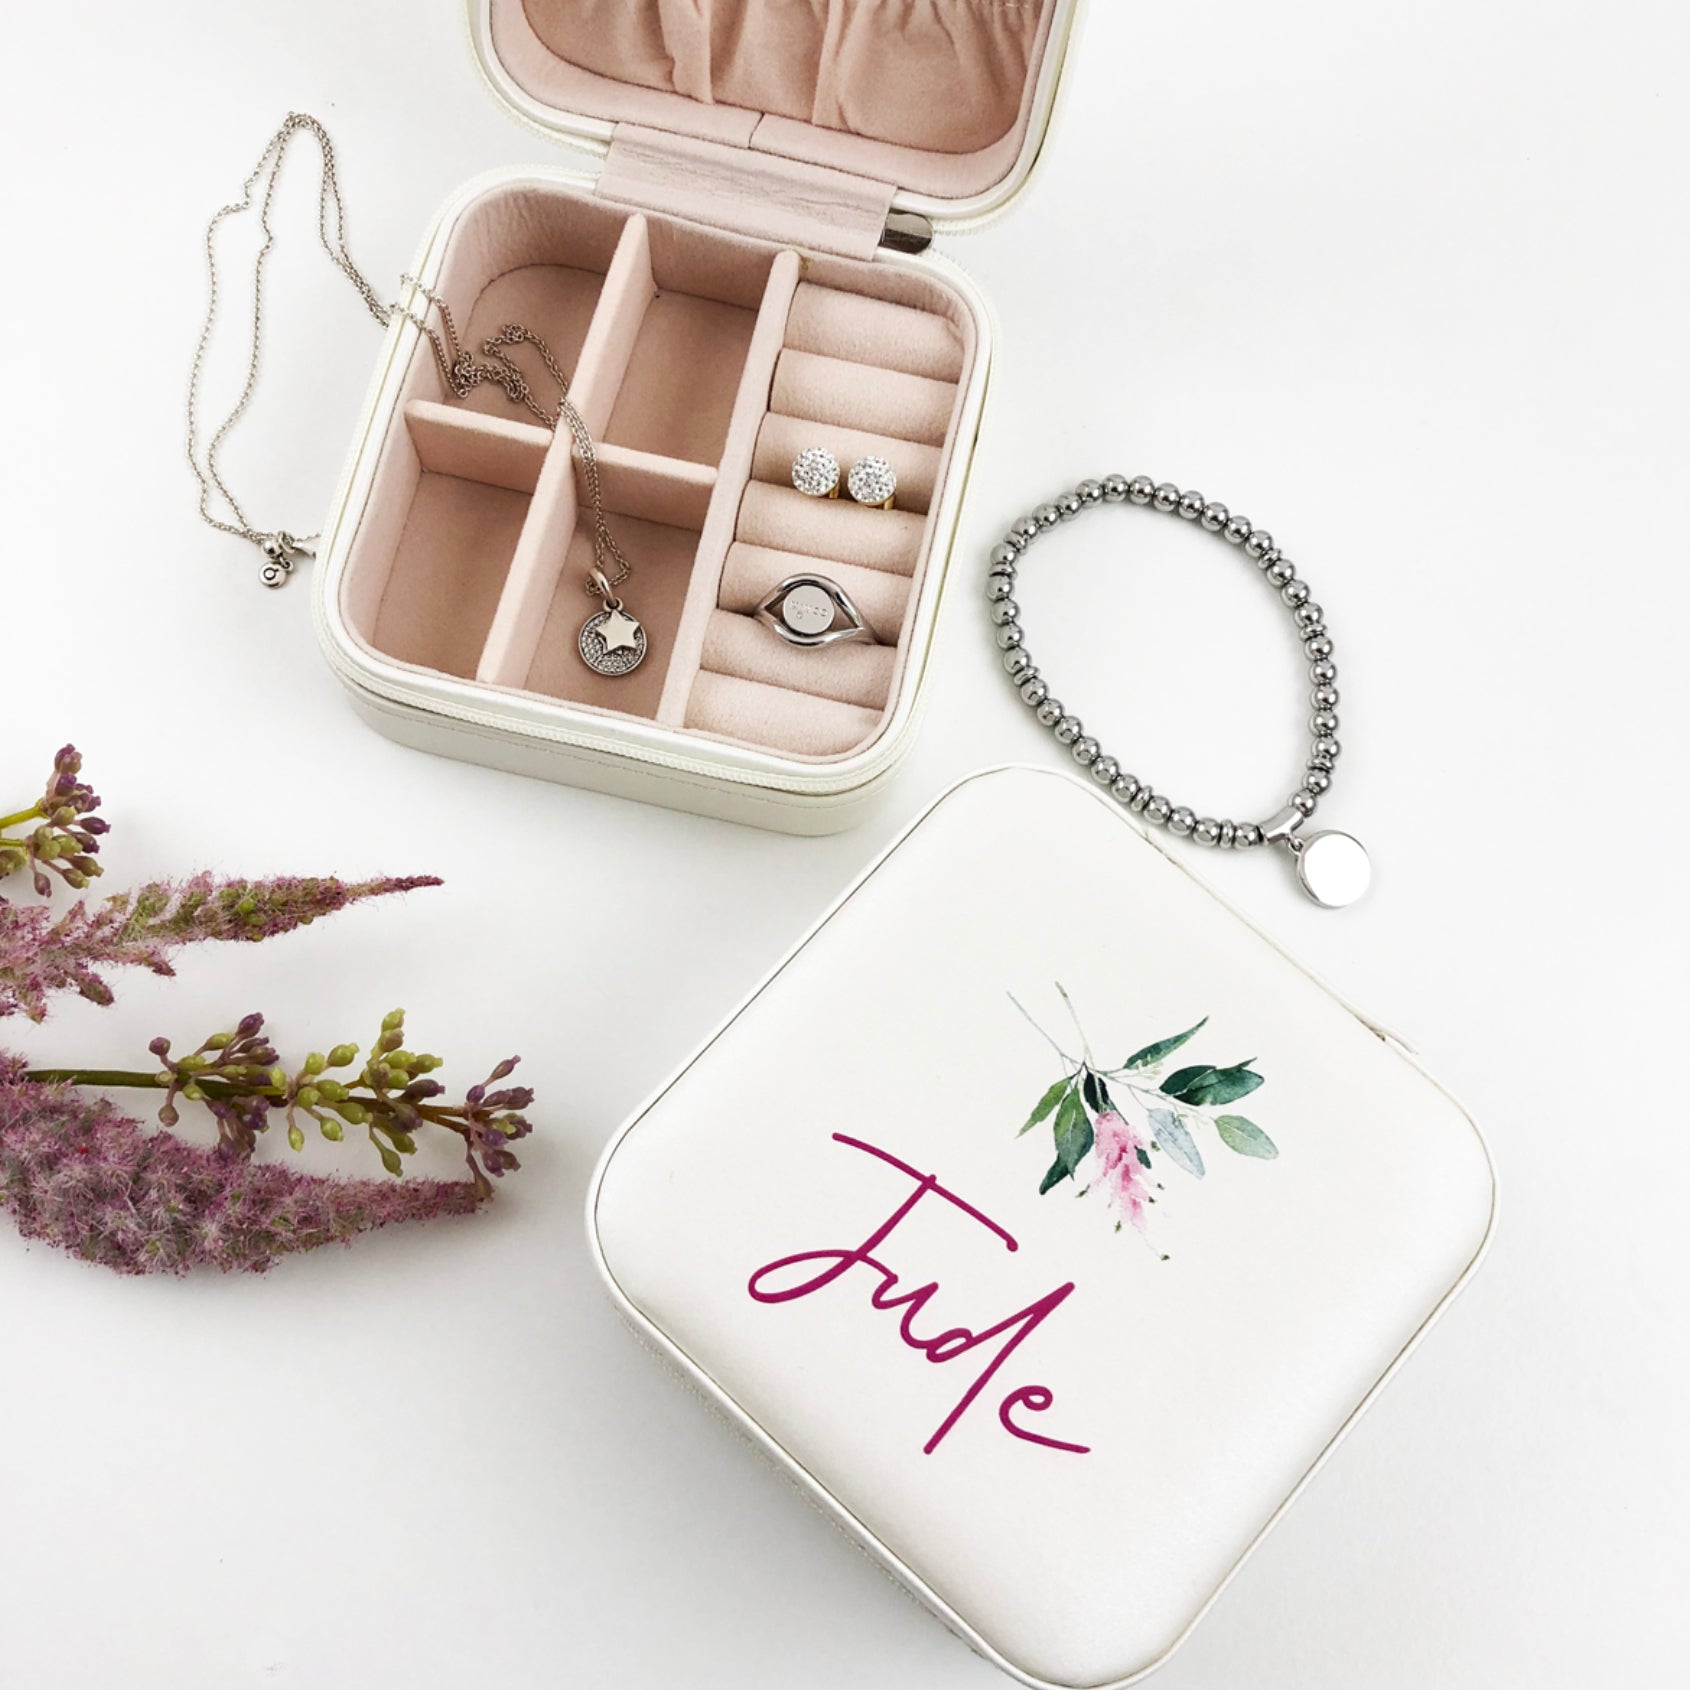 Floral Flourish Jewellery Case - (Limited Quantity)